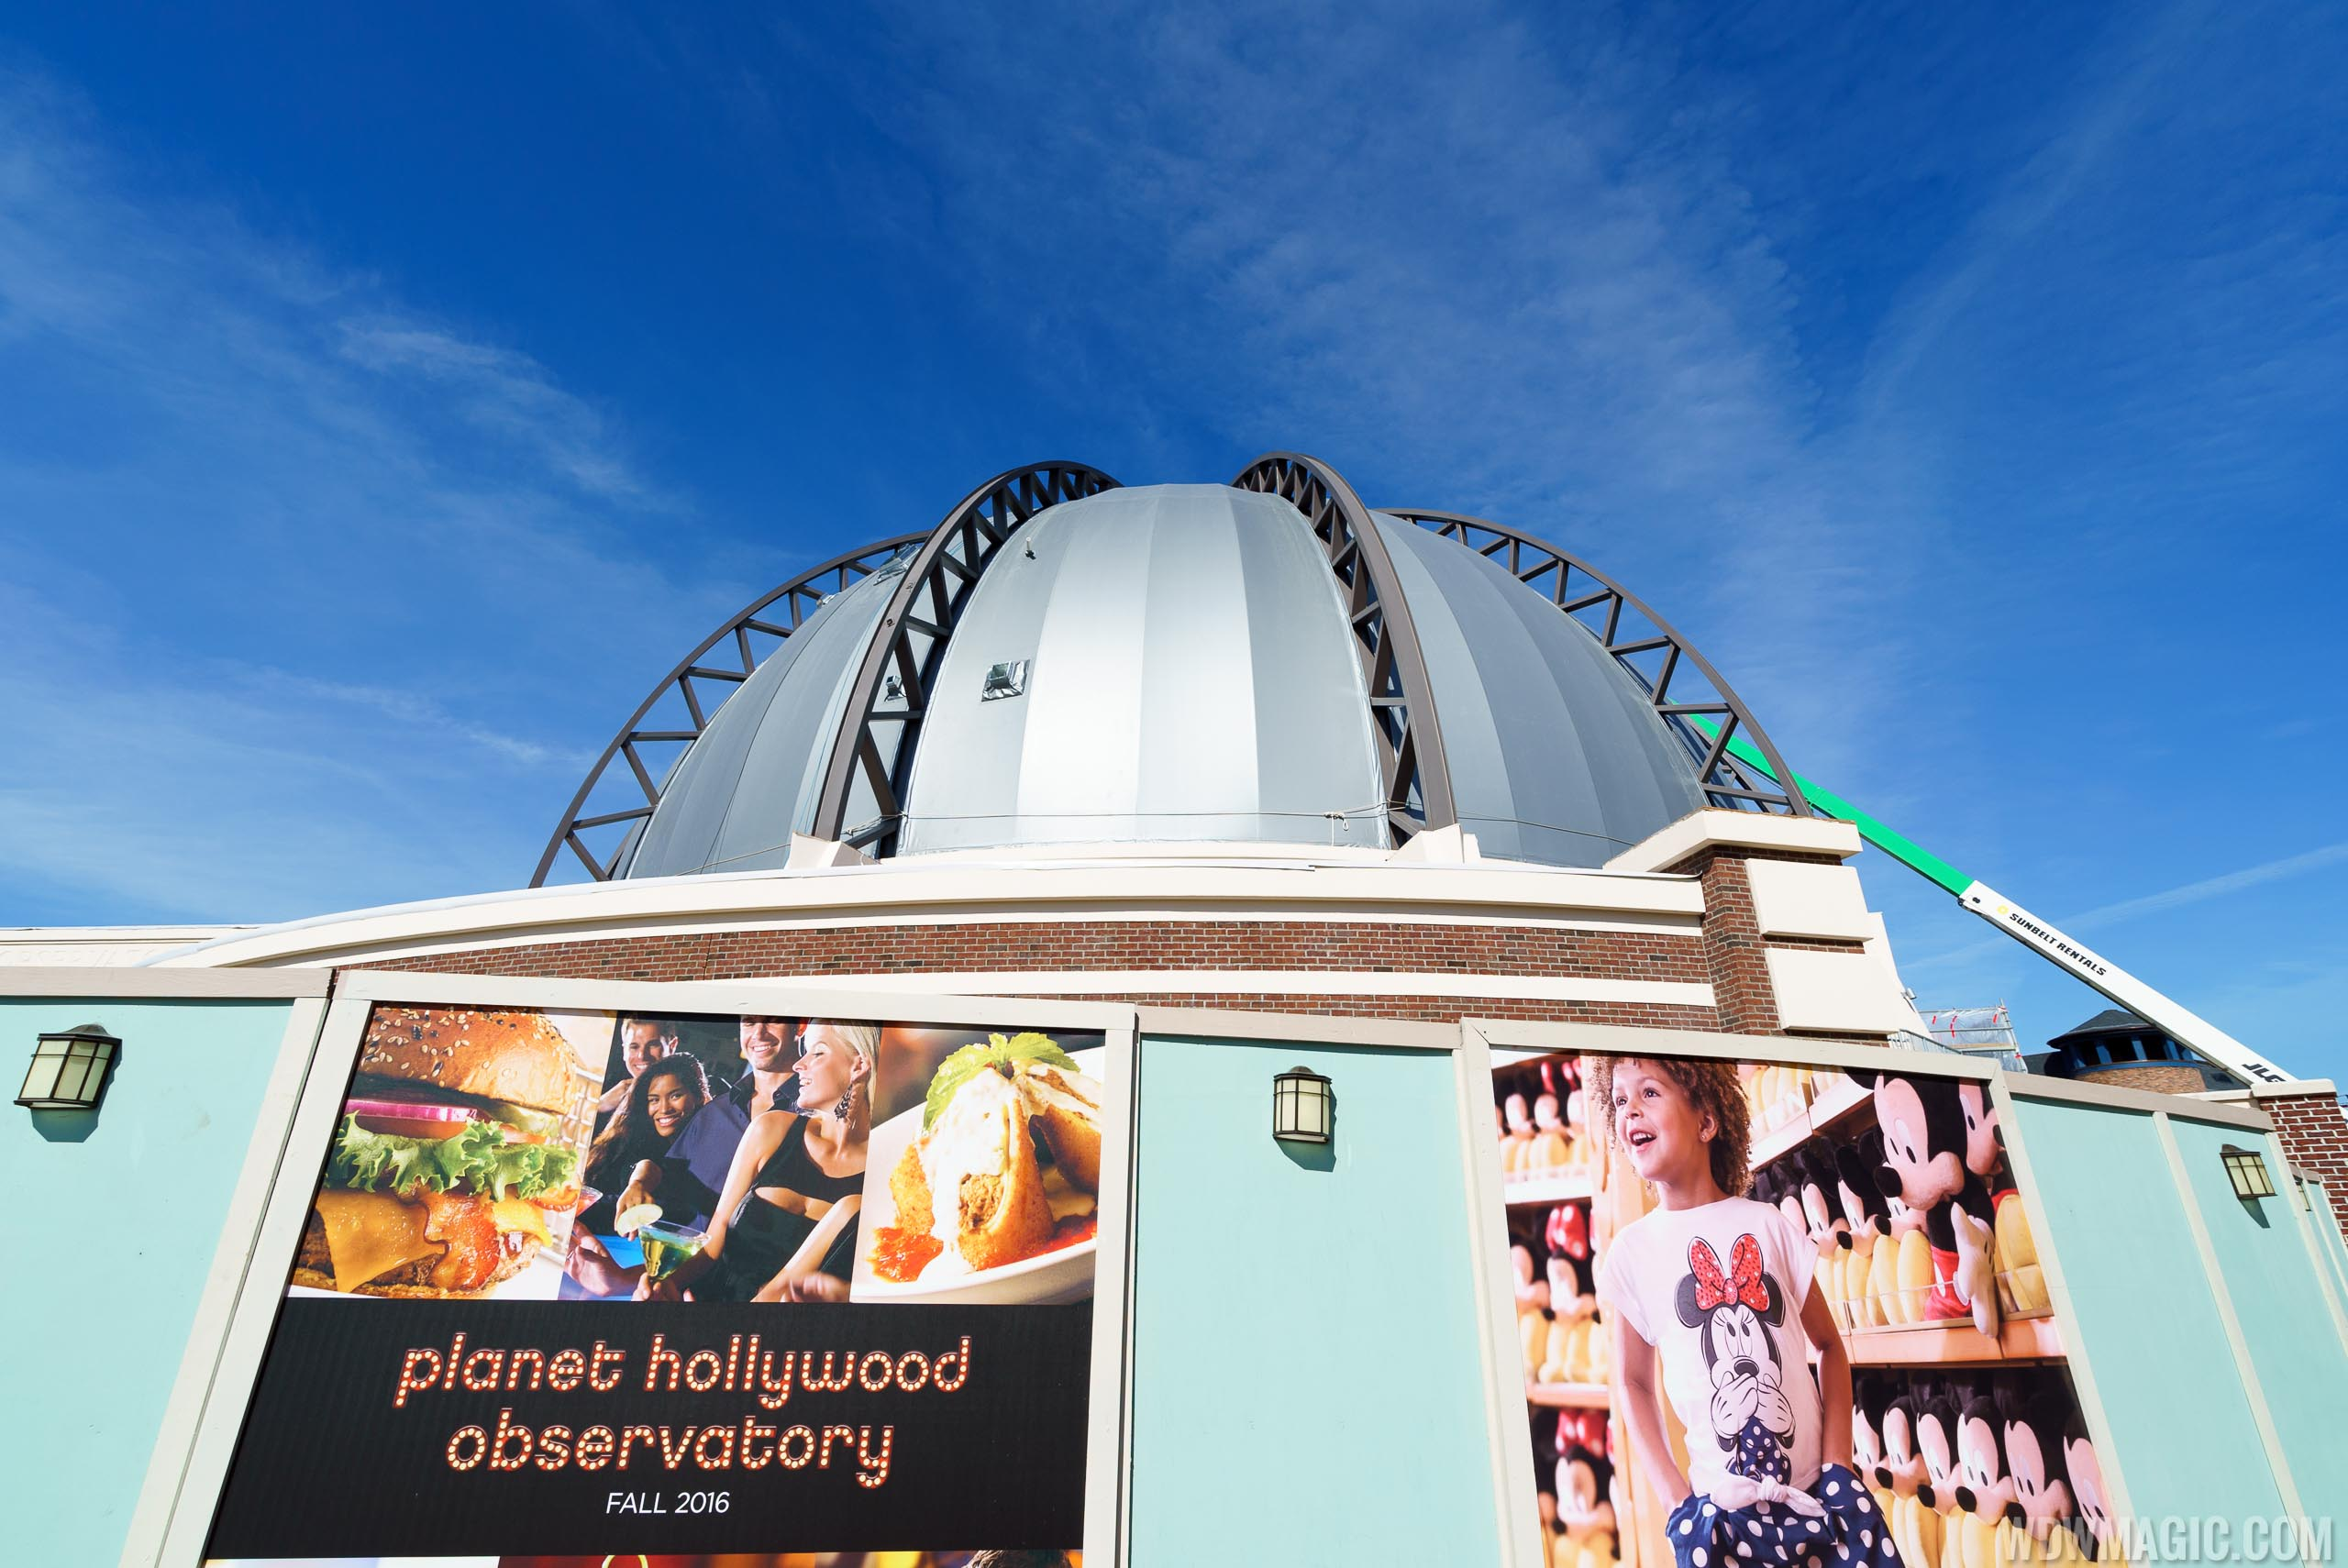 Planet Hollywood Observatory construction